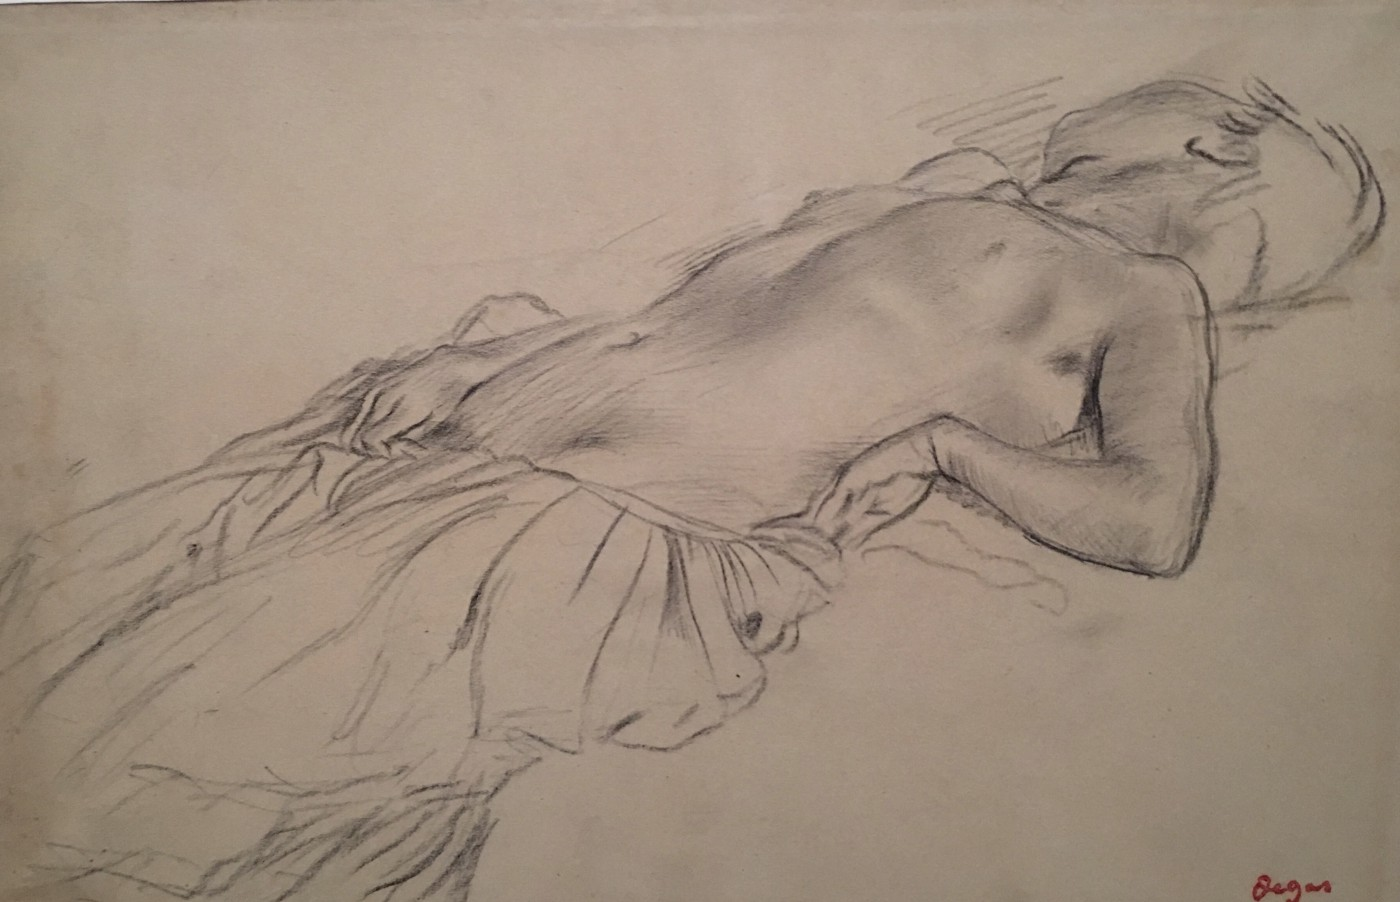 Sketch in charcoal of a reclining woman naked above mons pubis. Turning her head away, her right arm follows curvaceously below hip, left arm is bent, outer hand filling her waist, resting on hip.